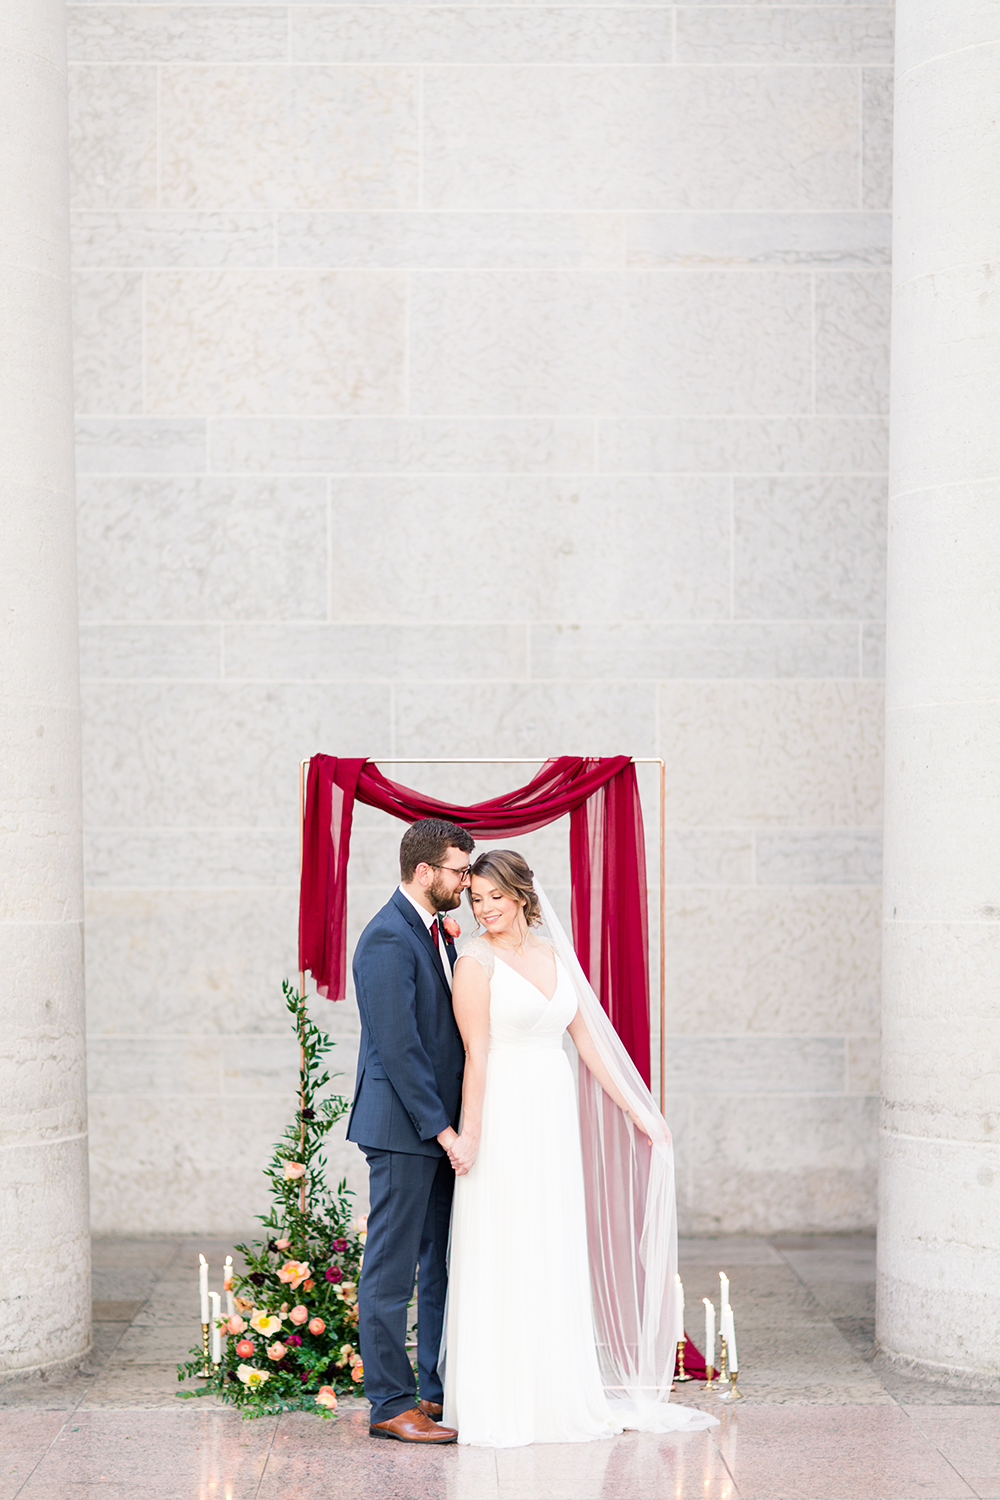 wedding inspiration - photo by Lauren Lee Photography http://ruffledblog.com/modern-grecian-inspired-wedding-ideas